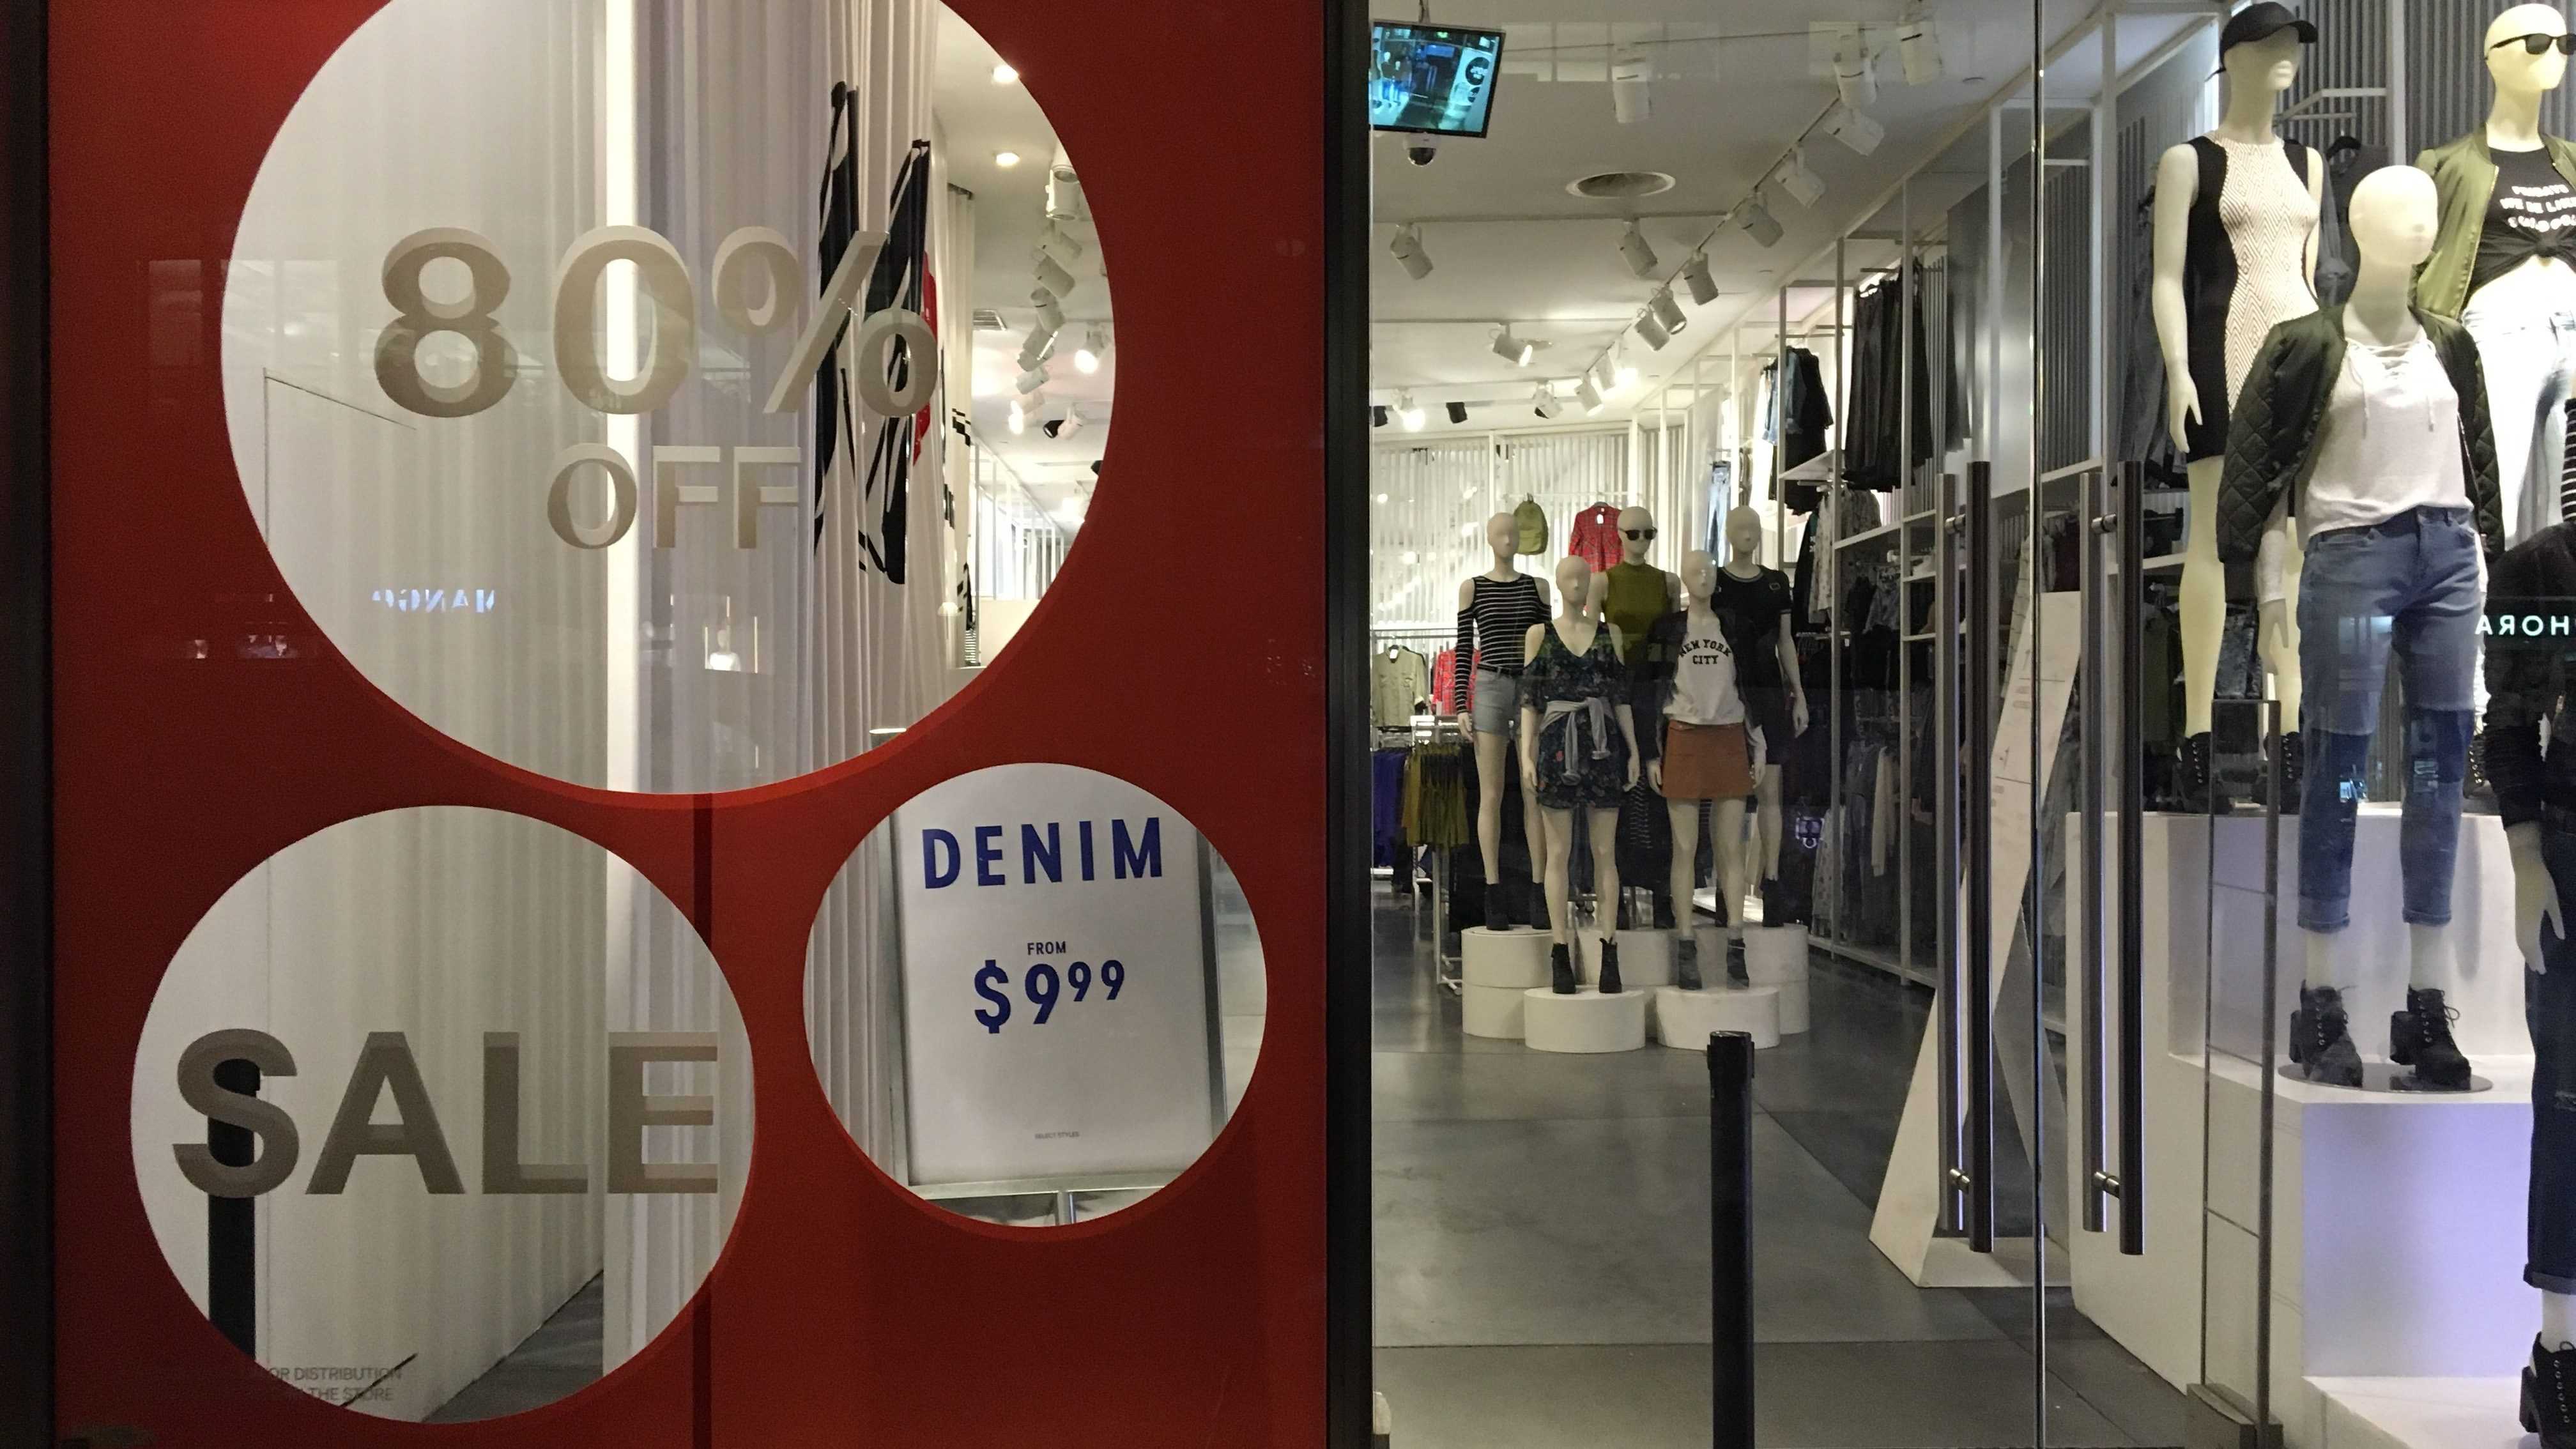 An H&M store has sale signs in the window in New York City, U.S., August 11, 2016. Picture taken August 11, 2016. U.S. retail sales were unexpectedly flat in July as Americans cut back on purchases of clothing and other goods, pointing to a moderation in consumer spending that could temper expectations of an acceleration in economic growth in the third quarter. REUTERS/Joe White - TM3EC8C0TK901